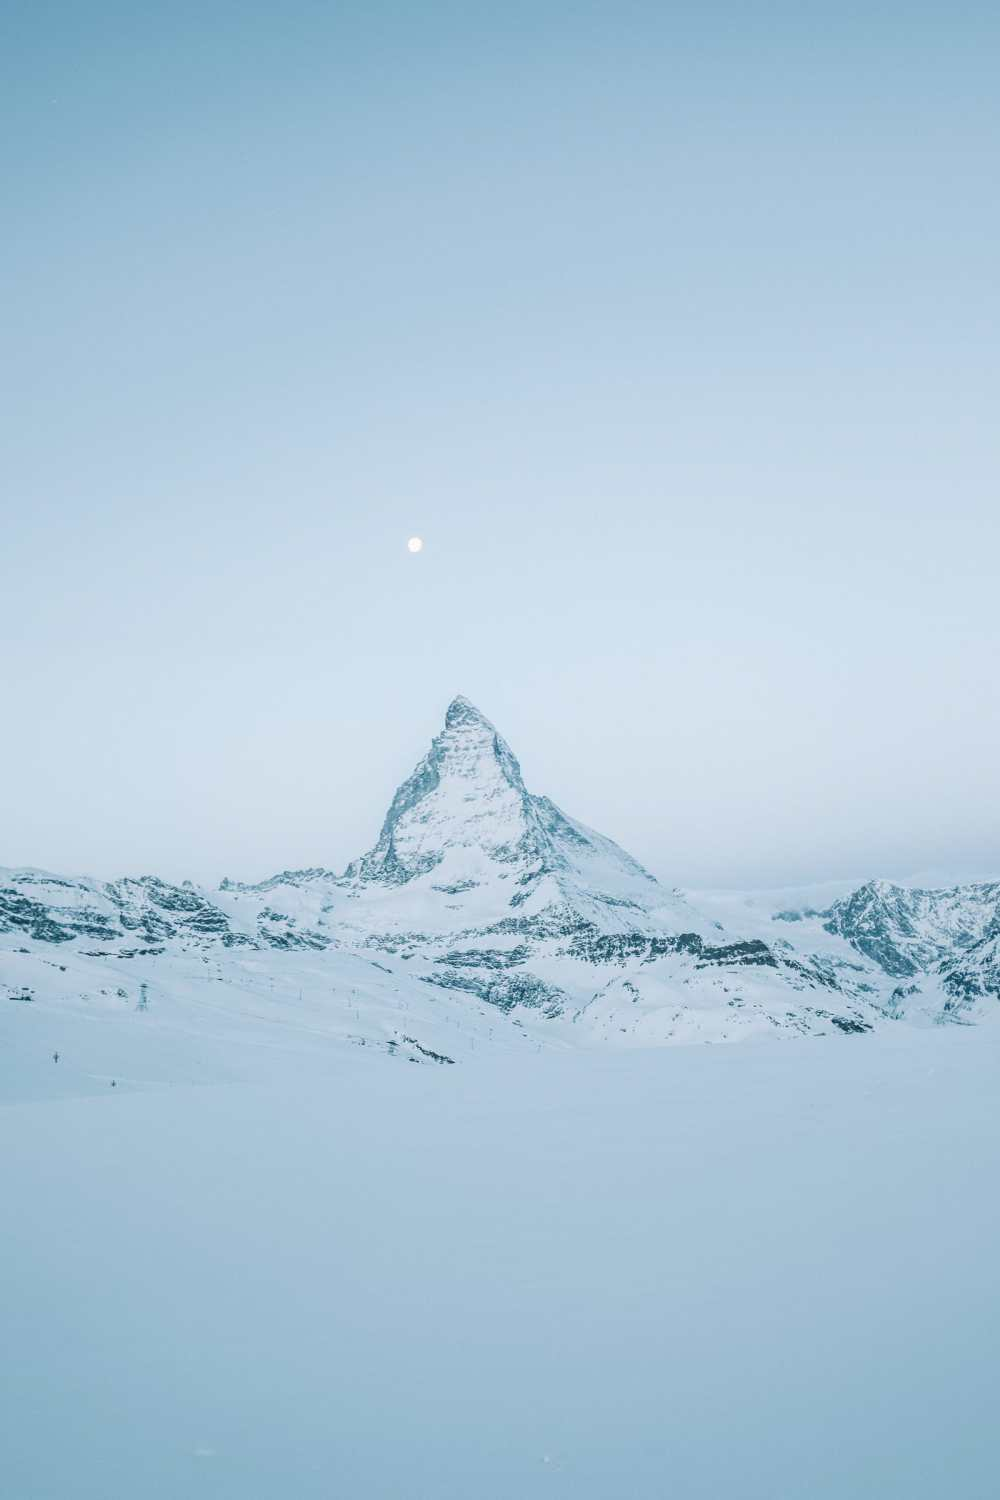 Sleeping In An Igloo Under The Matterhorn... In Zermatt, Switzerland (43)